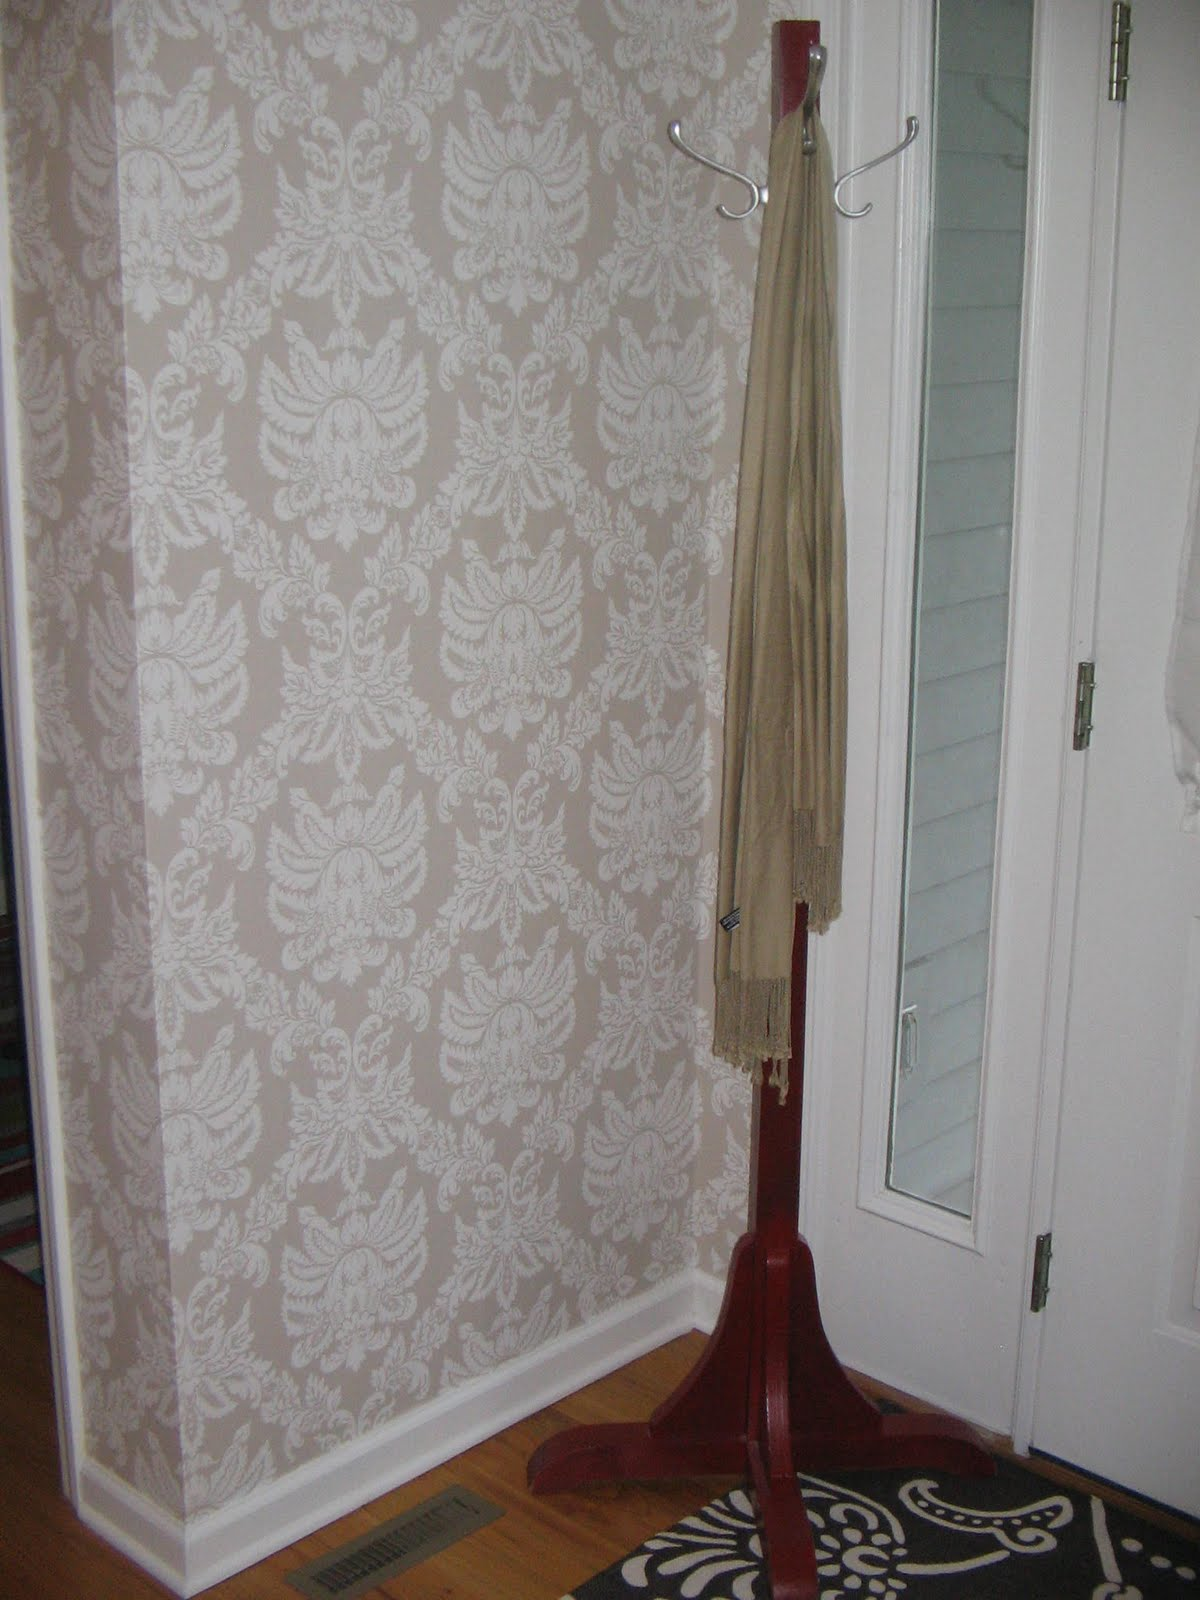 The Foyer Wallpaper Is Up Before And Afters Revealed